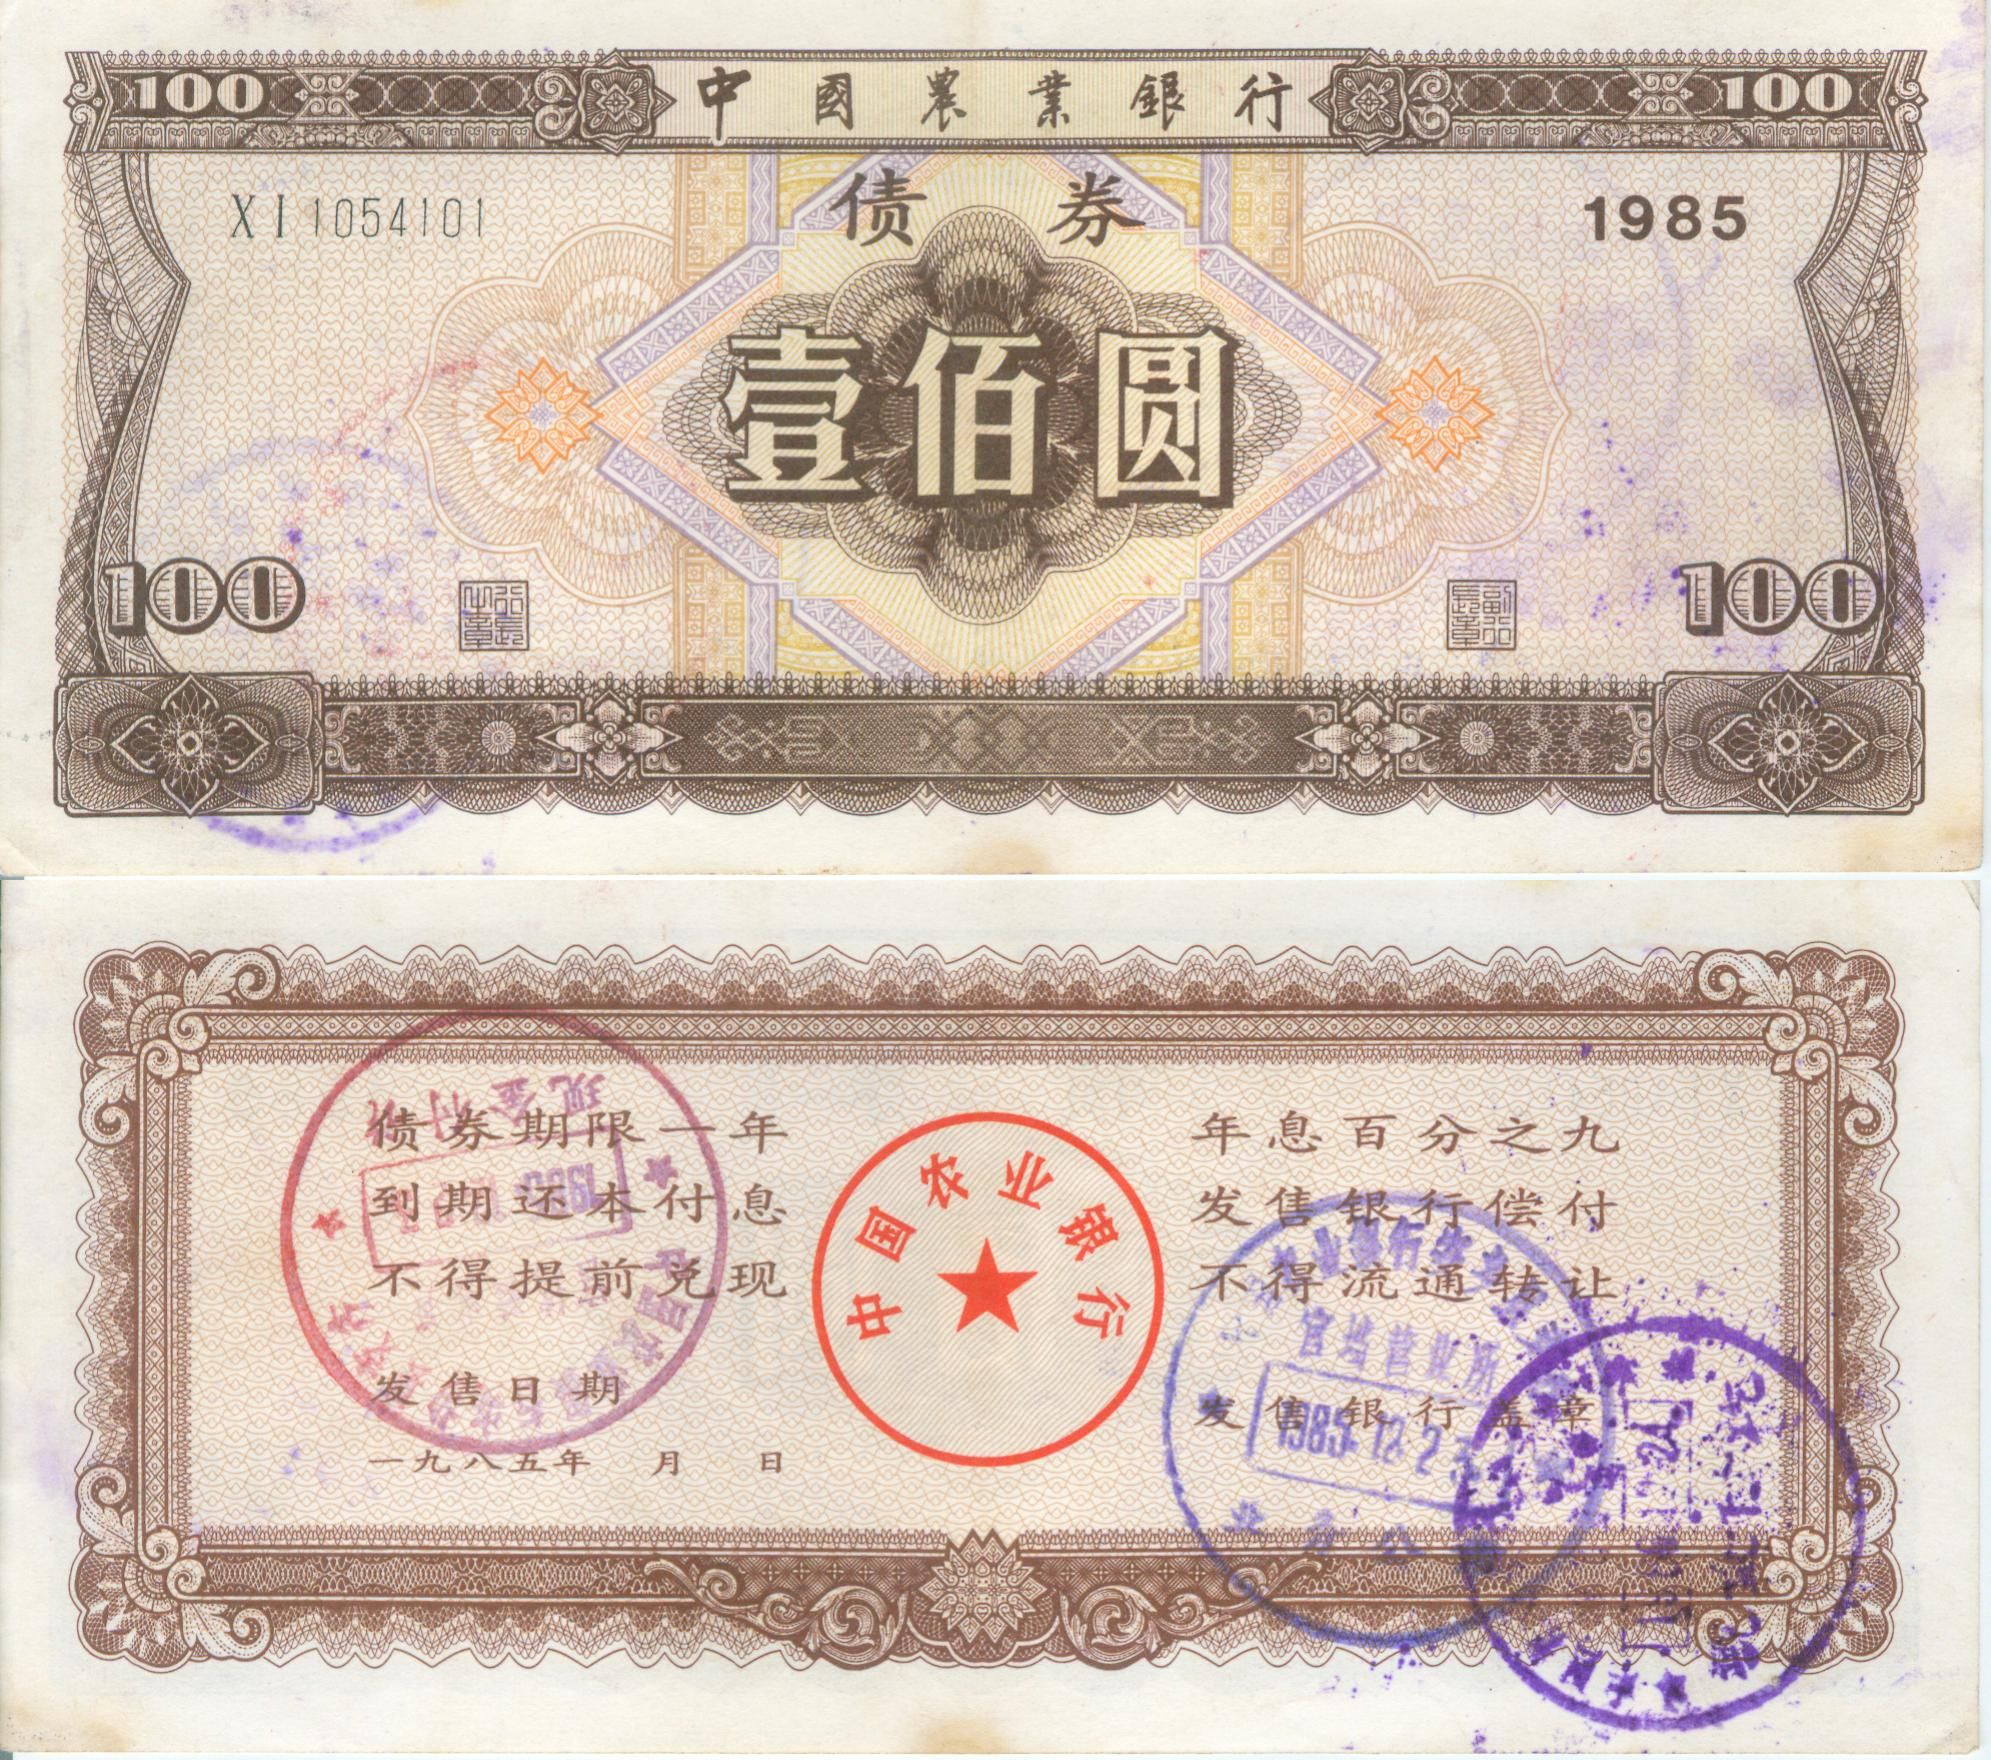 B7322, China Farmer's Bank, 9% Finance Bond 100 Yuan, 1987